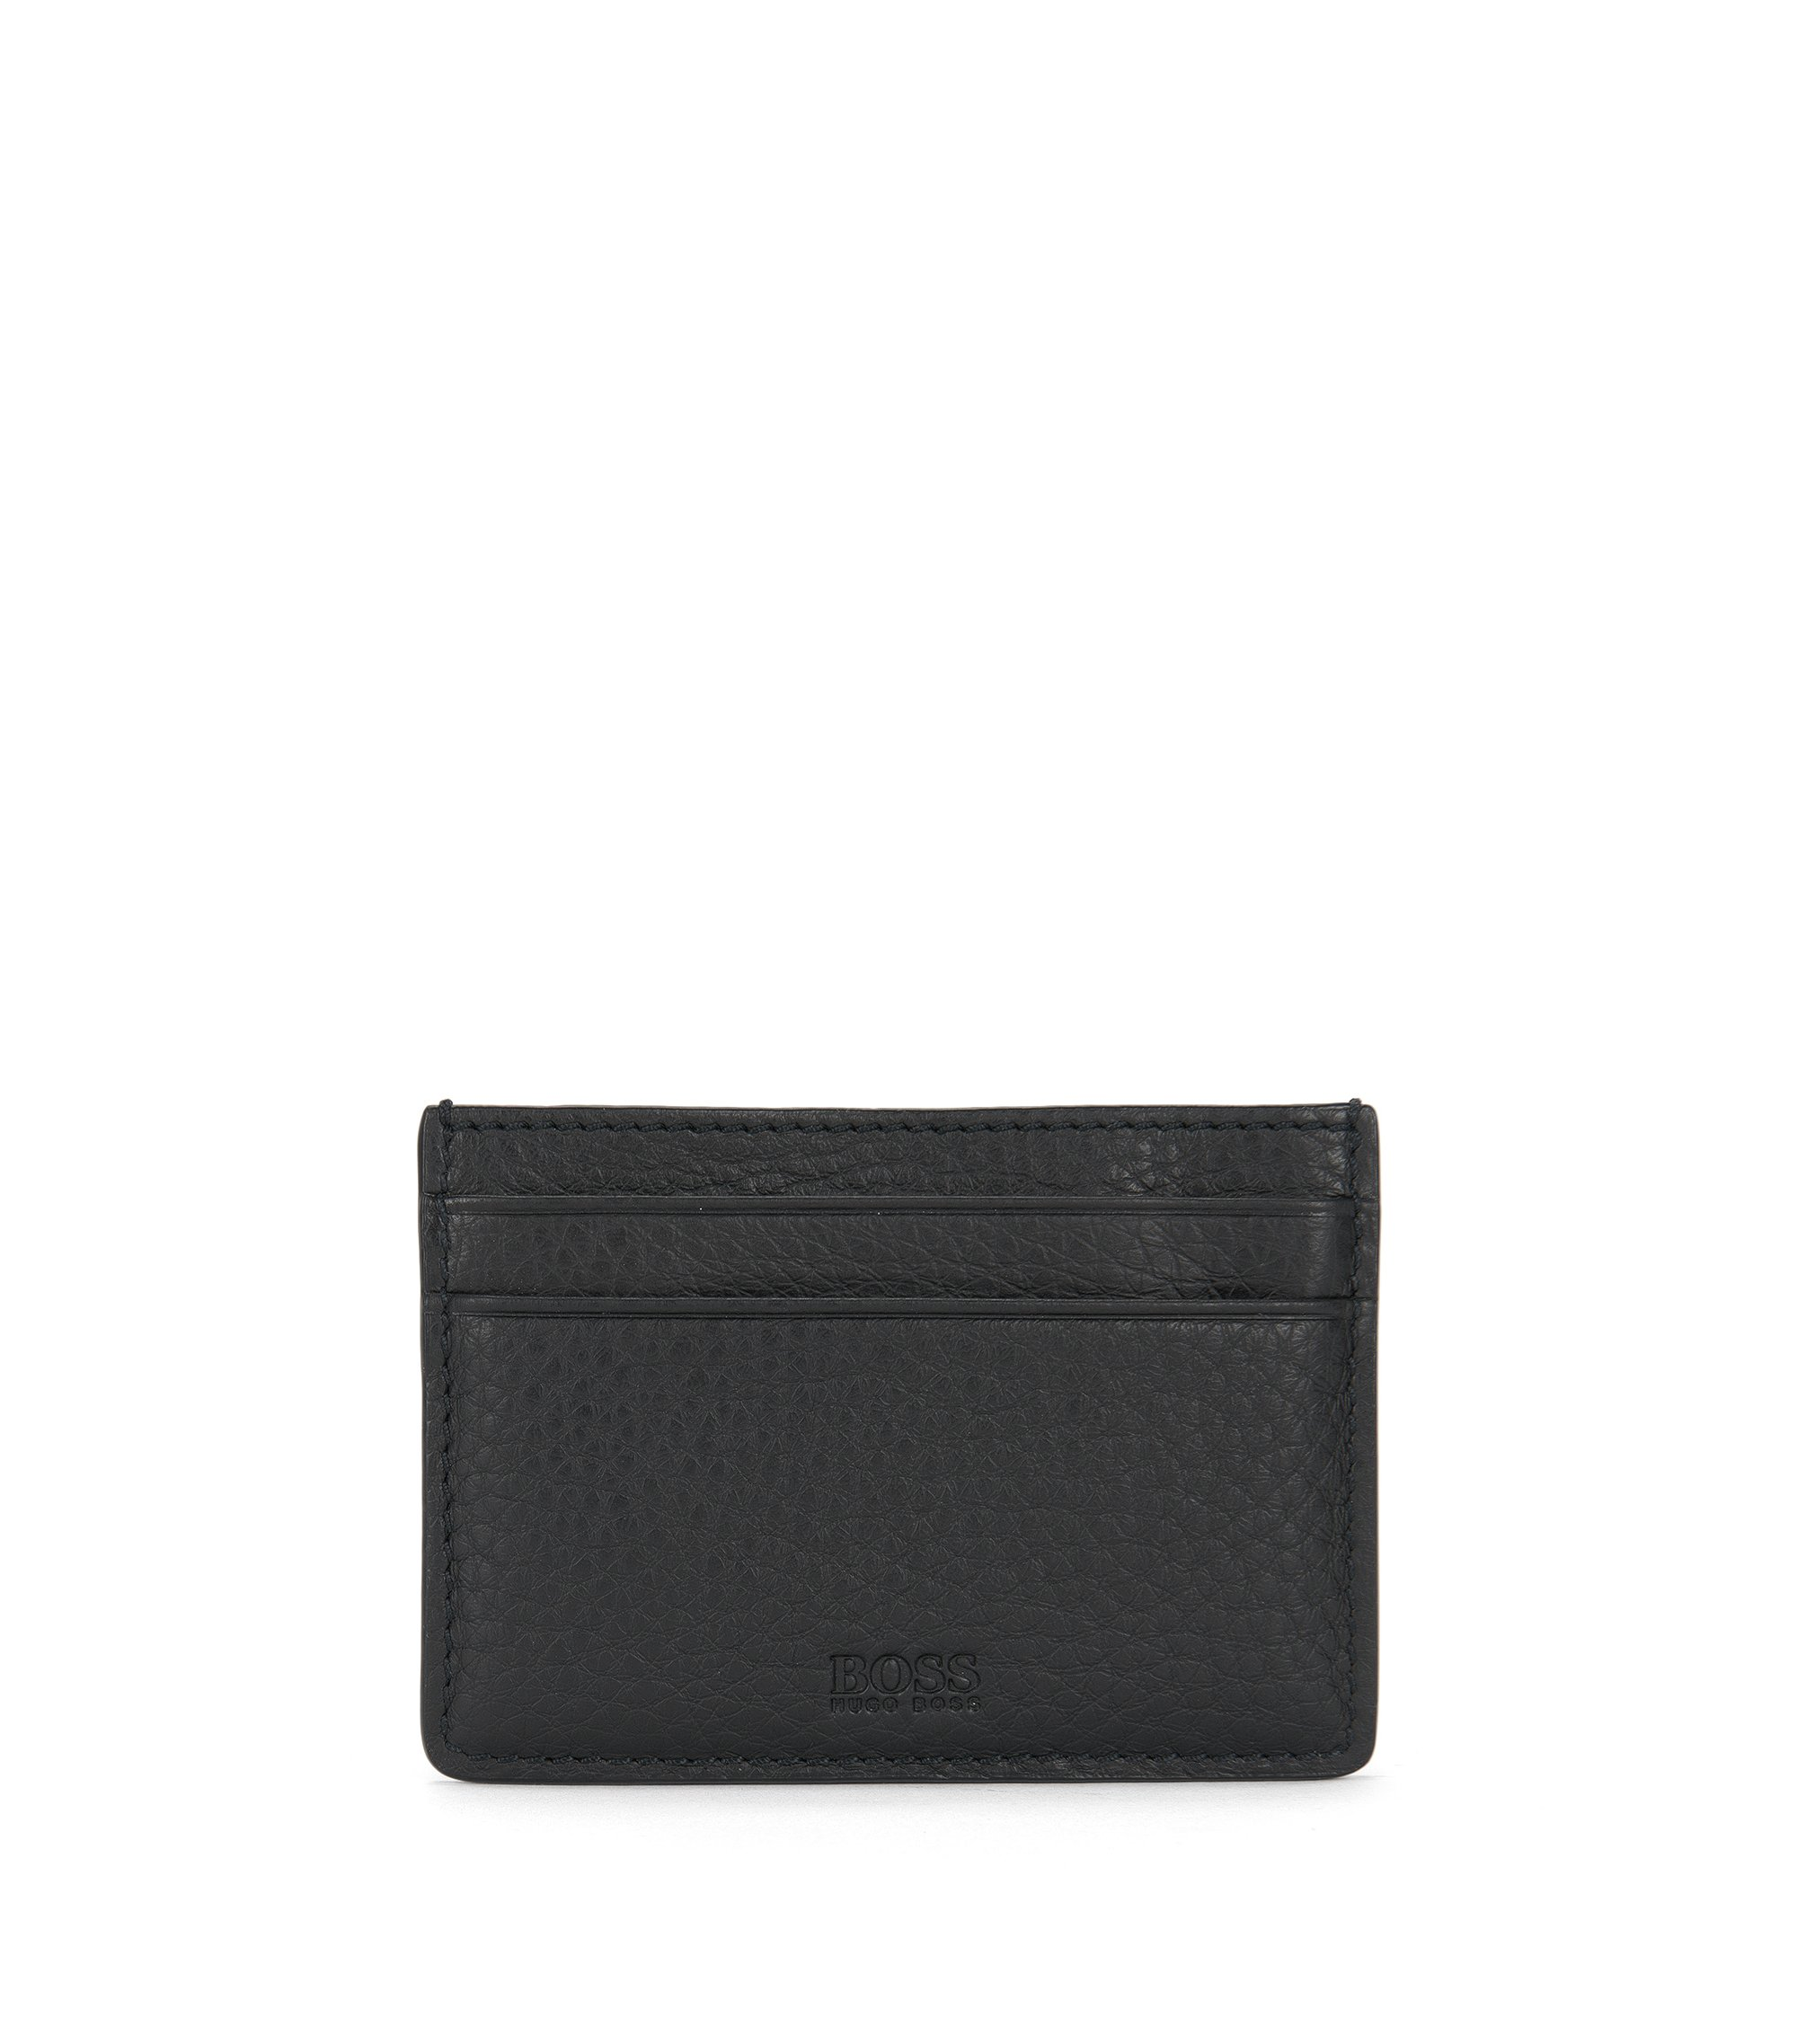 'Traveler Money Clip' | Leather Grained Card Case With Money Clip, Black